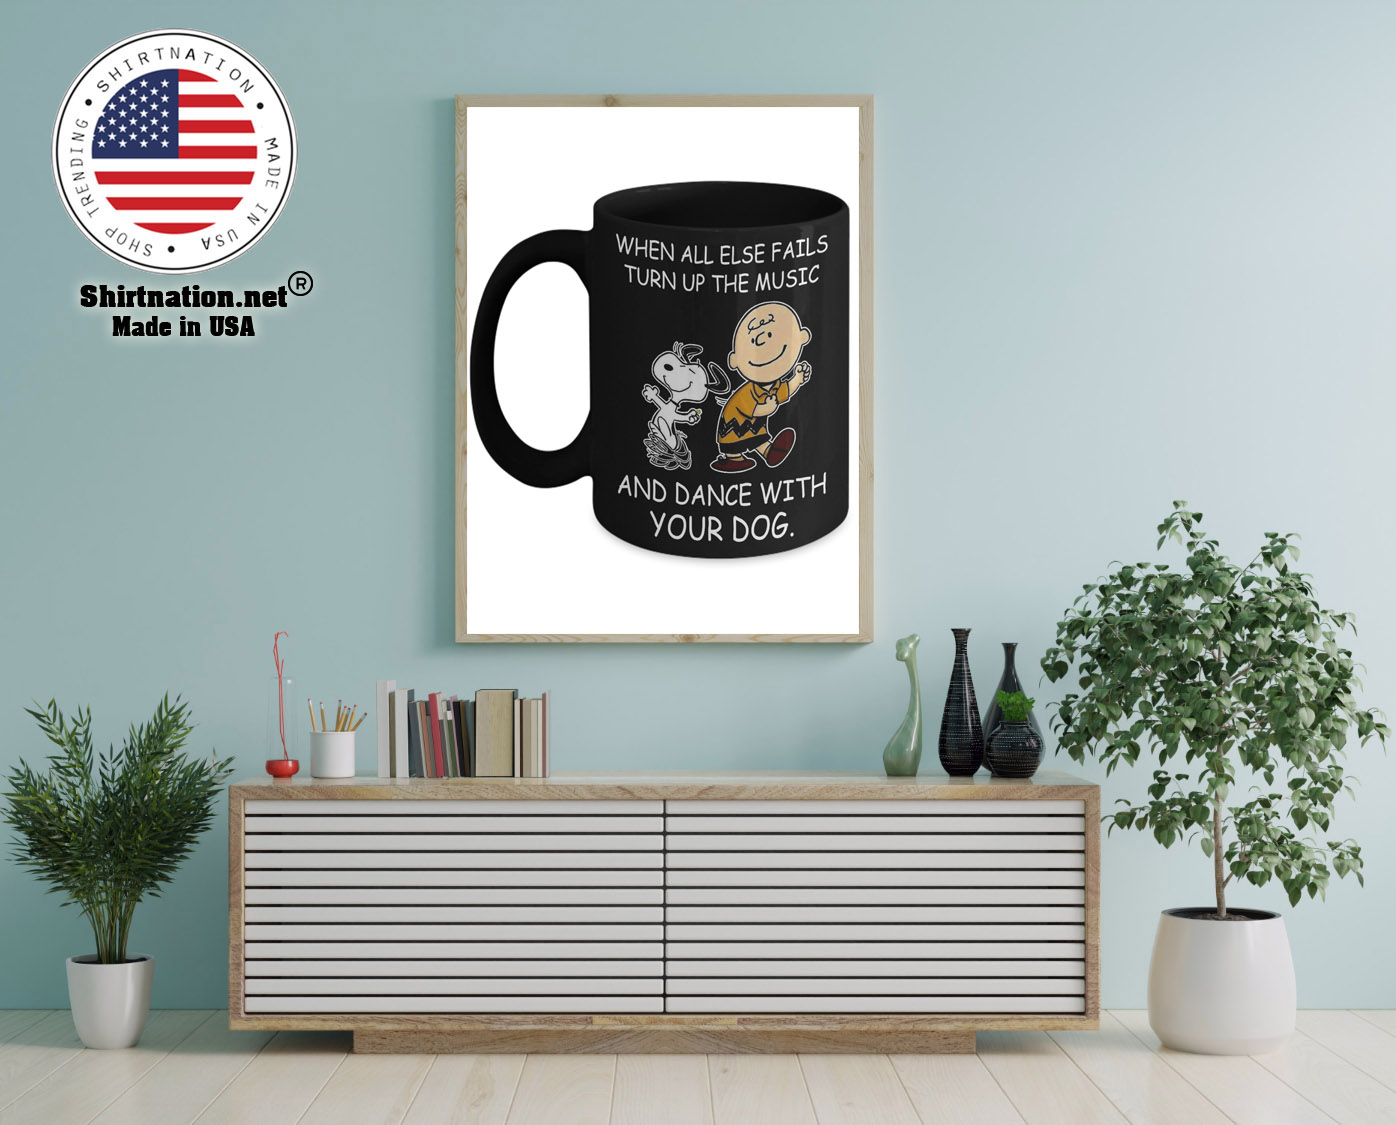 Snoopy and Charlie Brown When all else fails turn up the music and dance with your dog mug 12